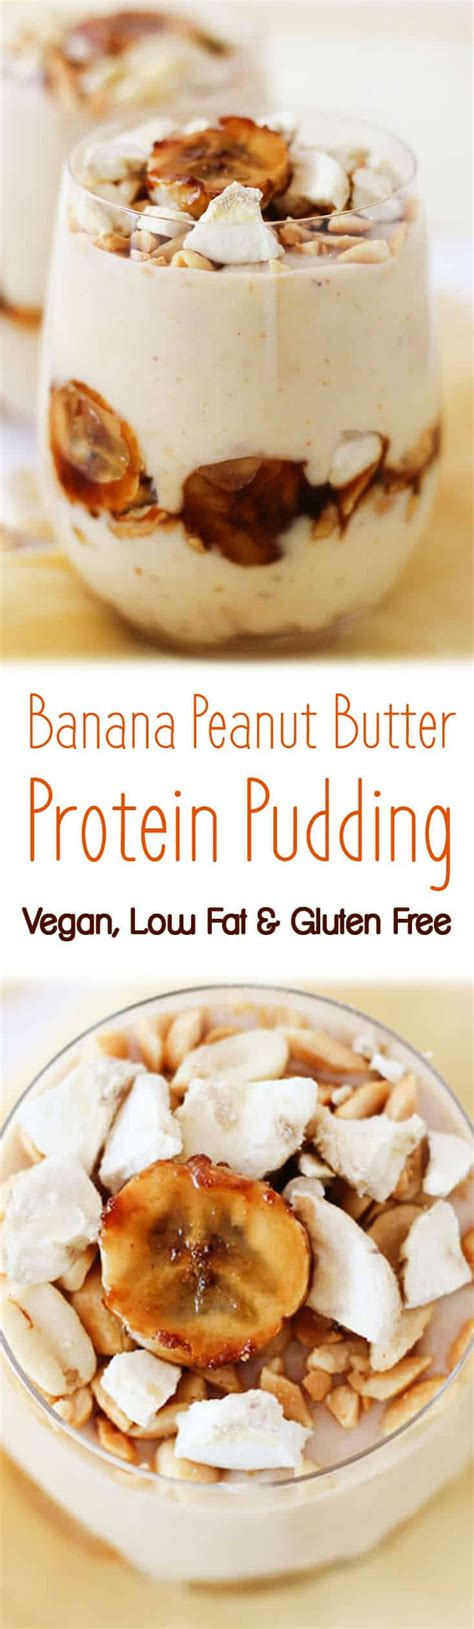 protein pudding vegan banana peanut butter protein pudding